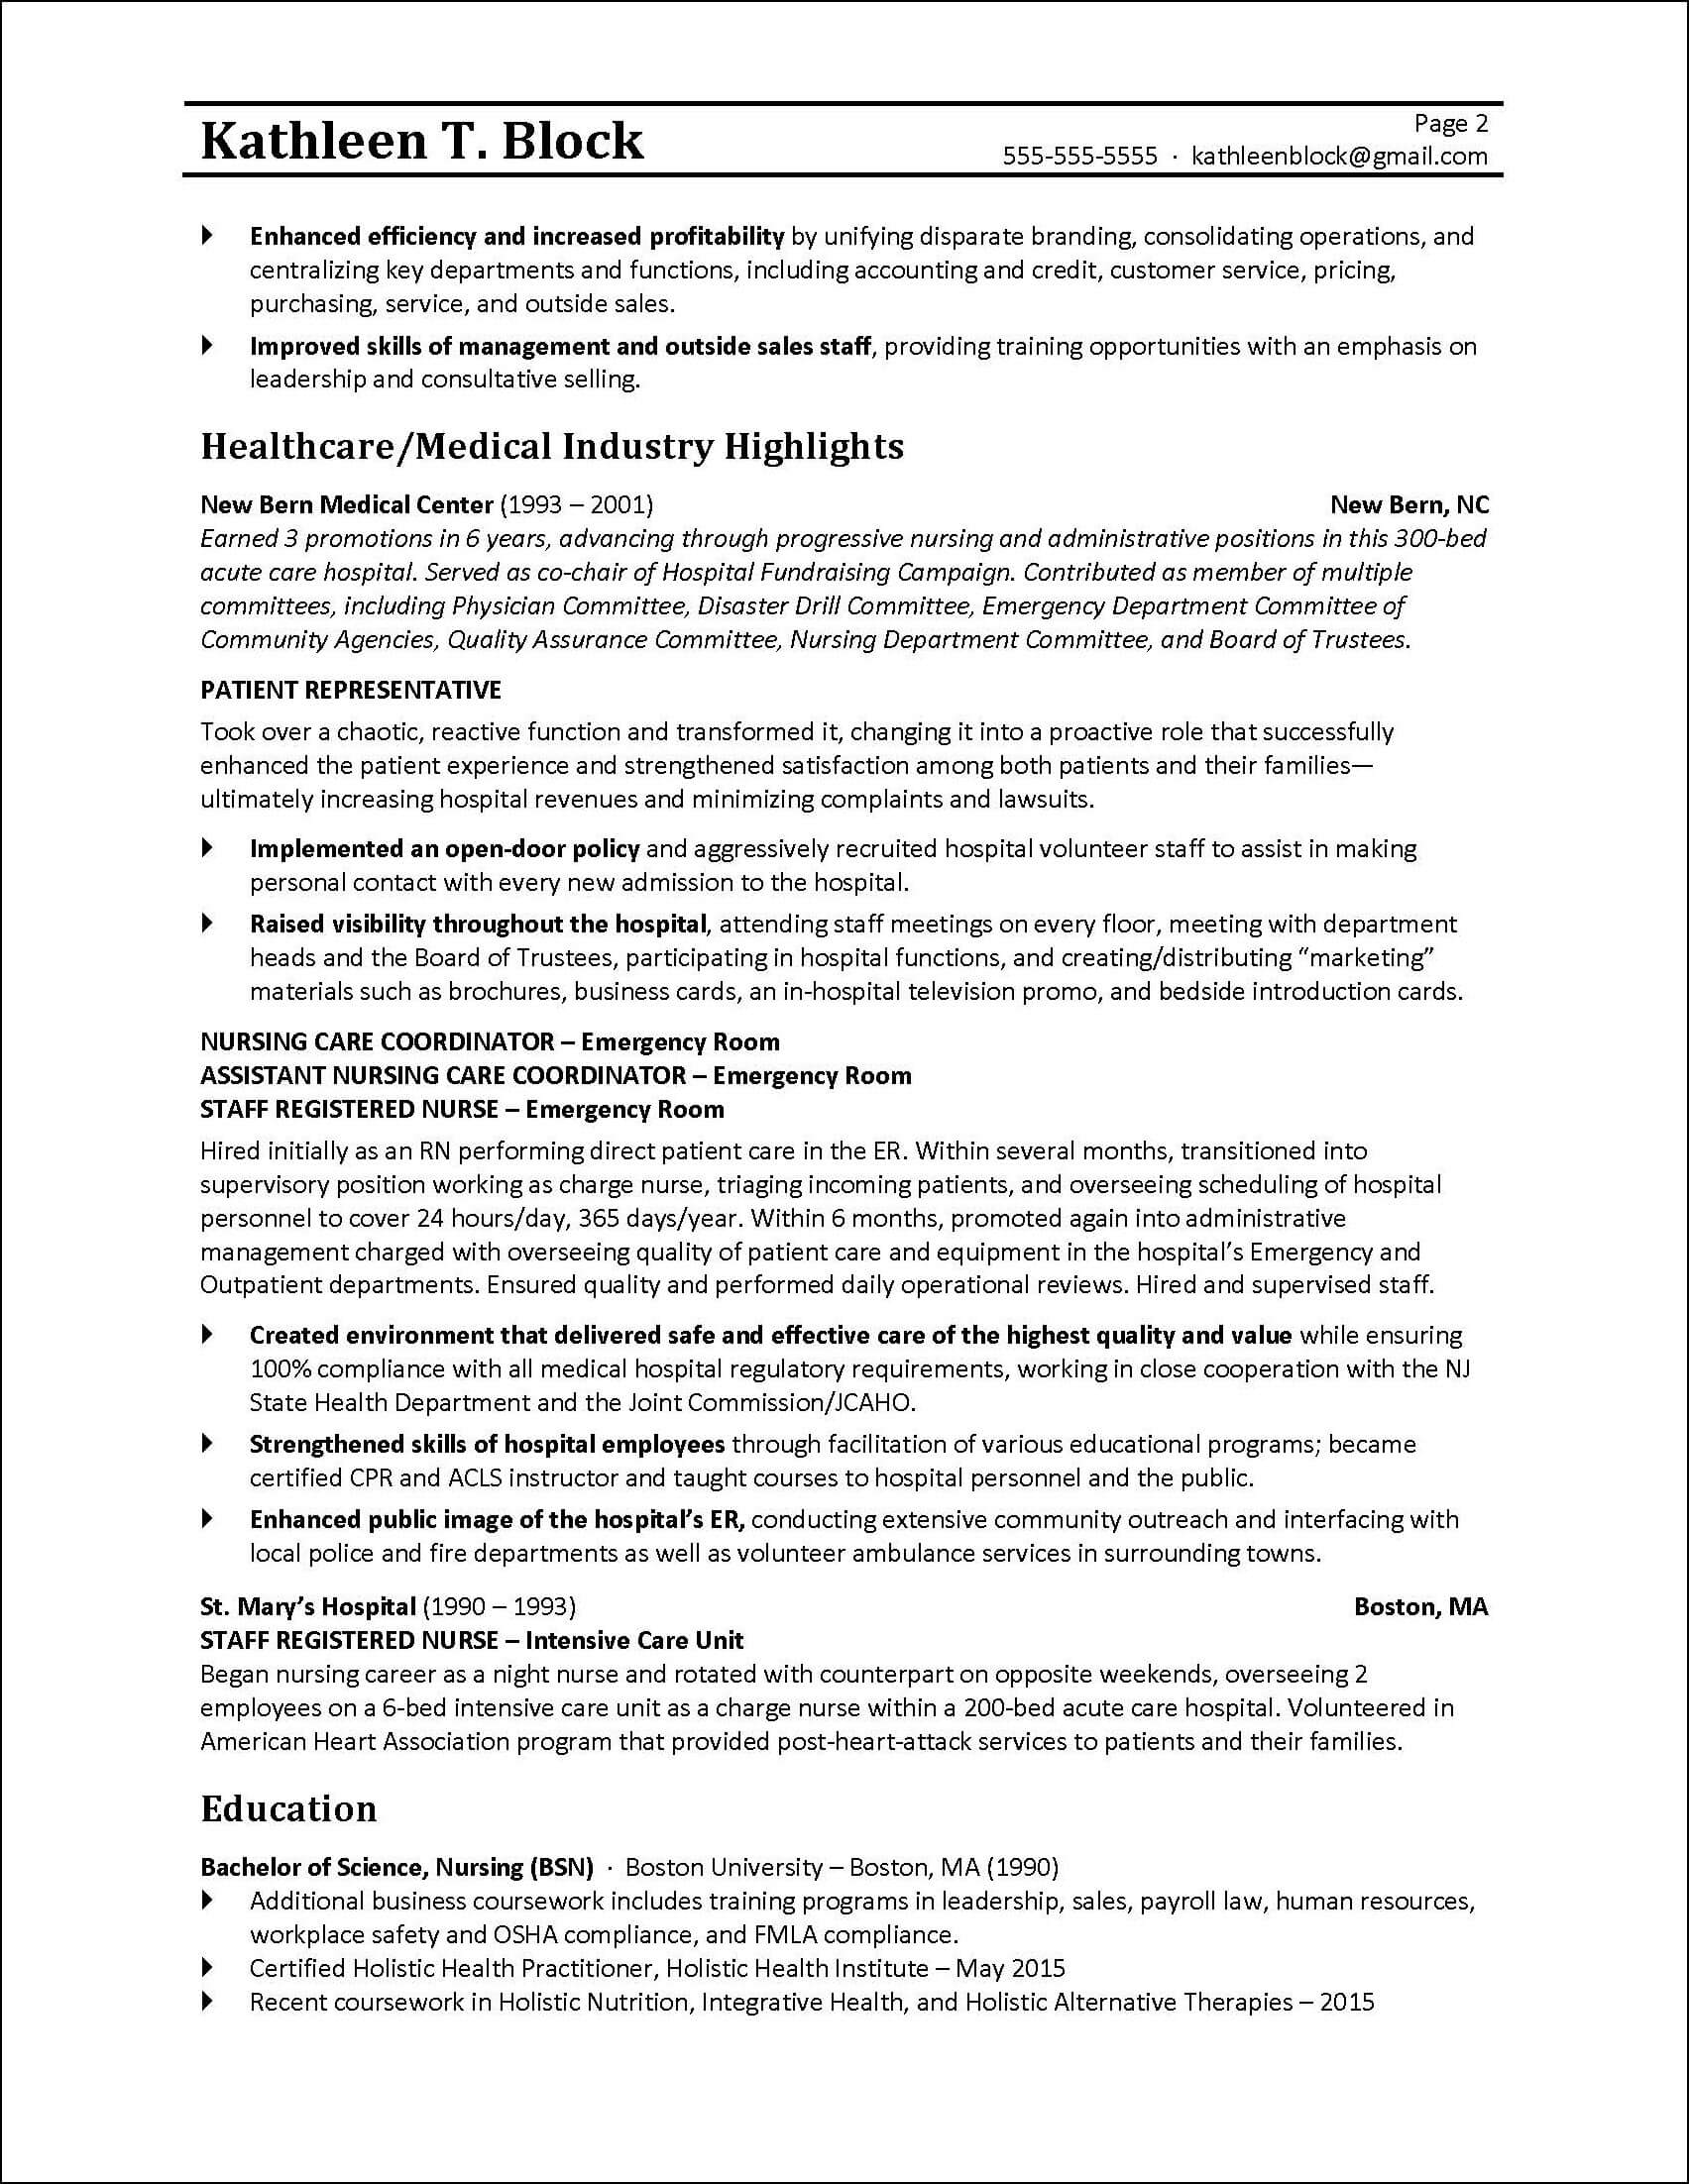 Management Resume Sample | Healthcare Industry